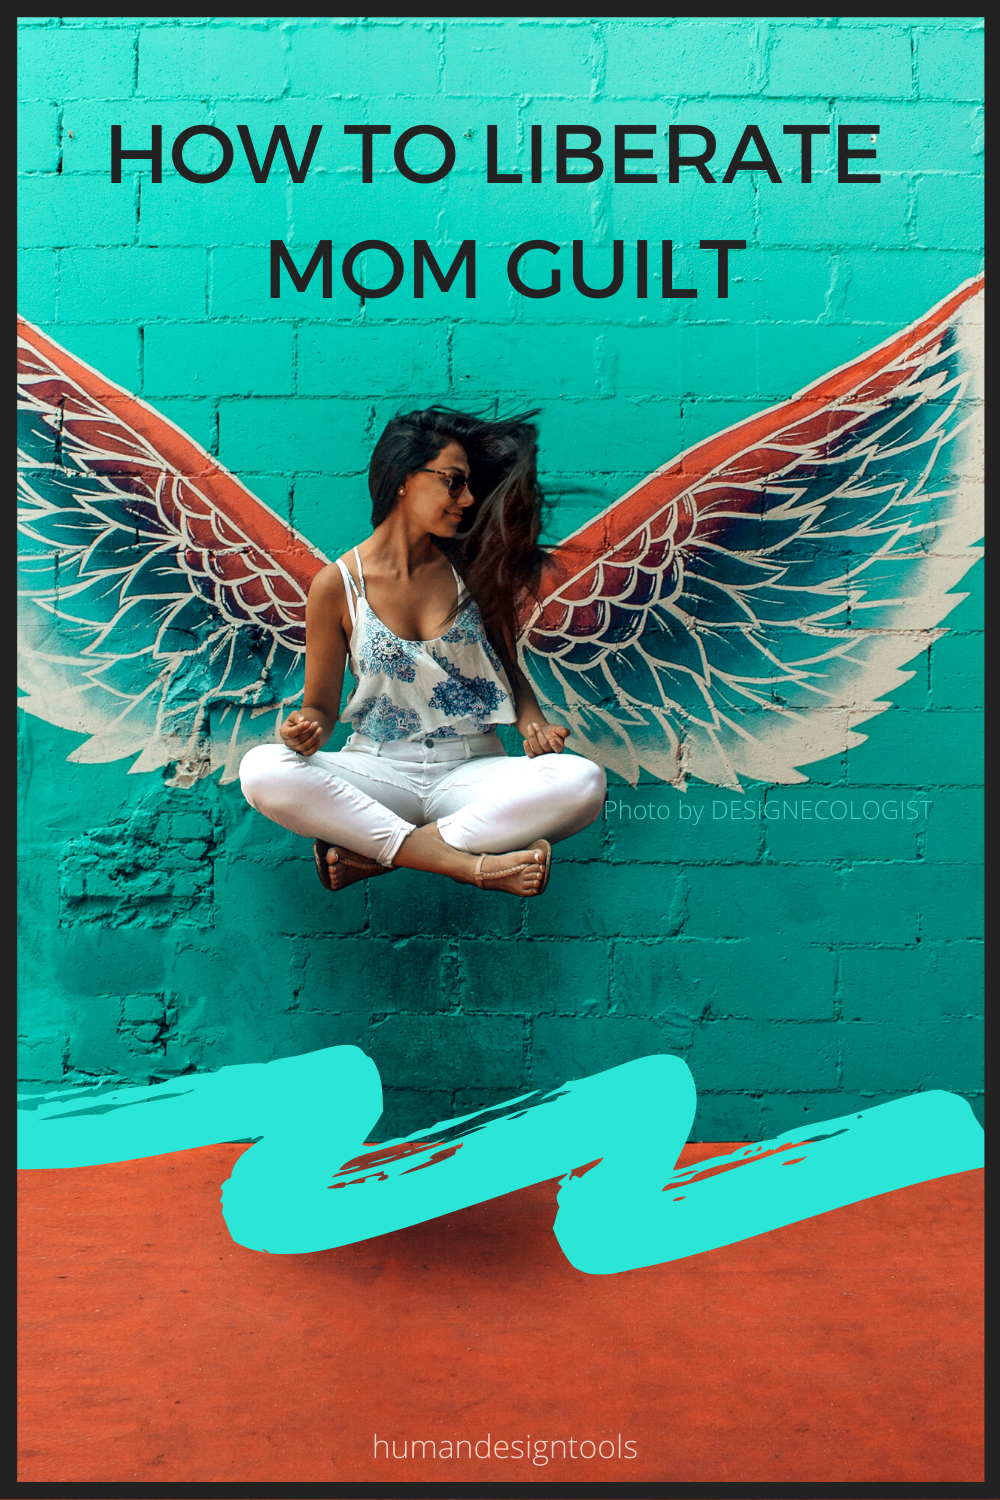 How to Liberate Mom Guilt